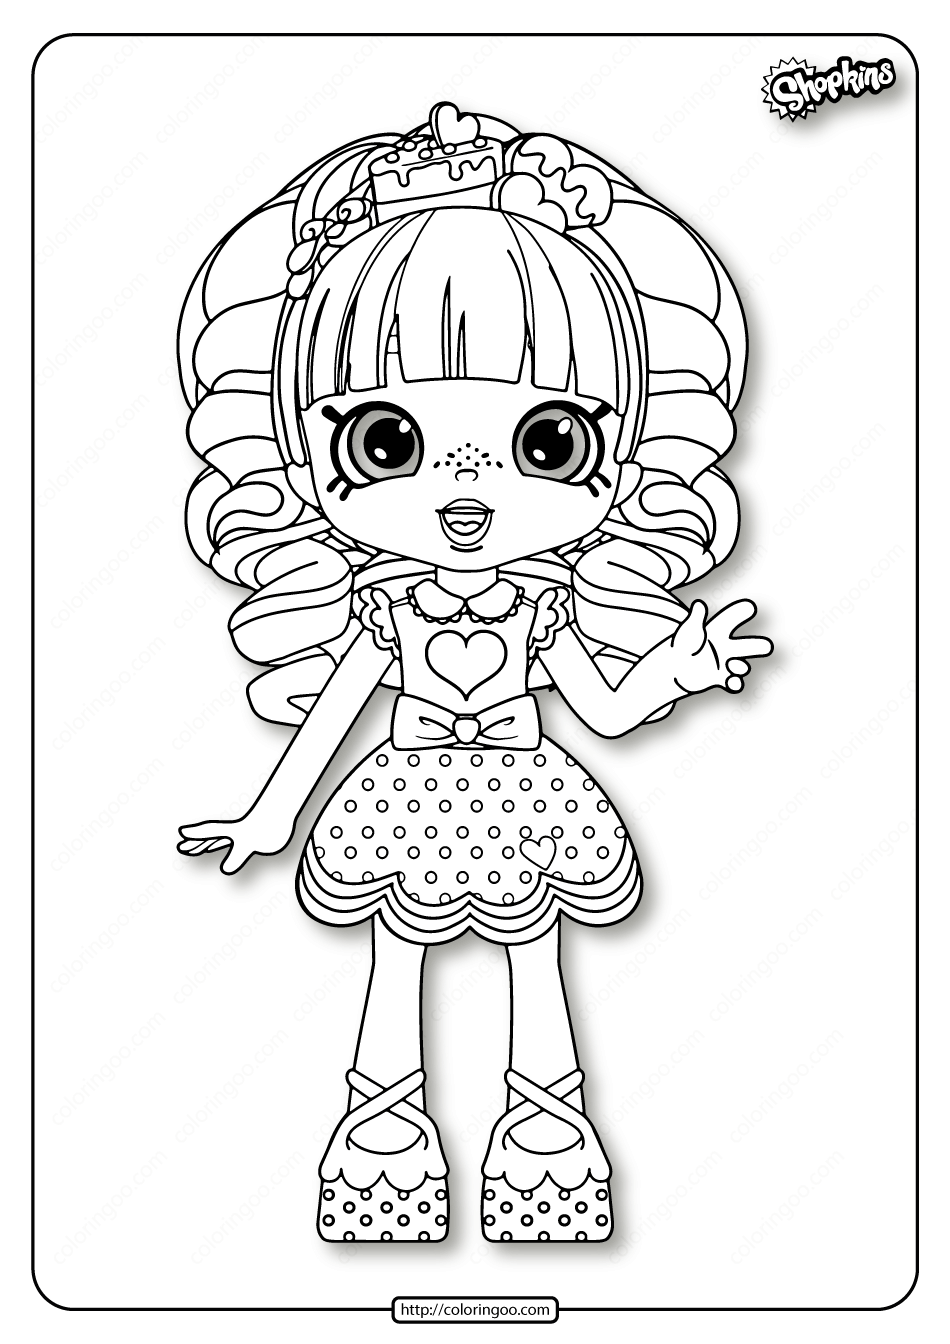 Shopkins Rainbow Kate Coloring Pages